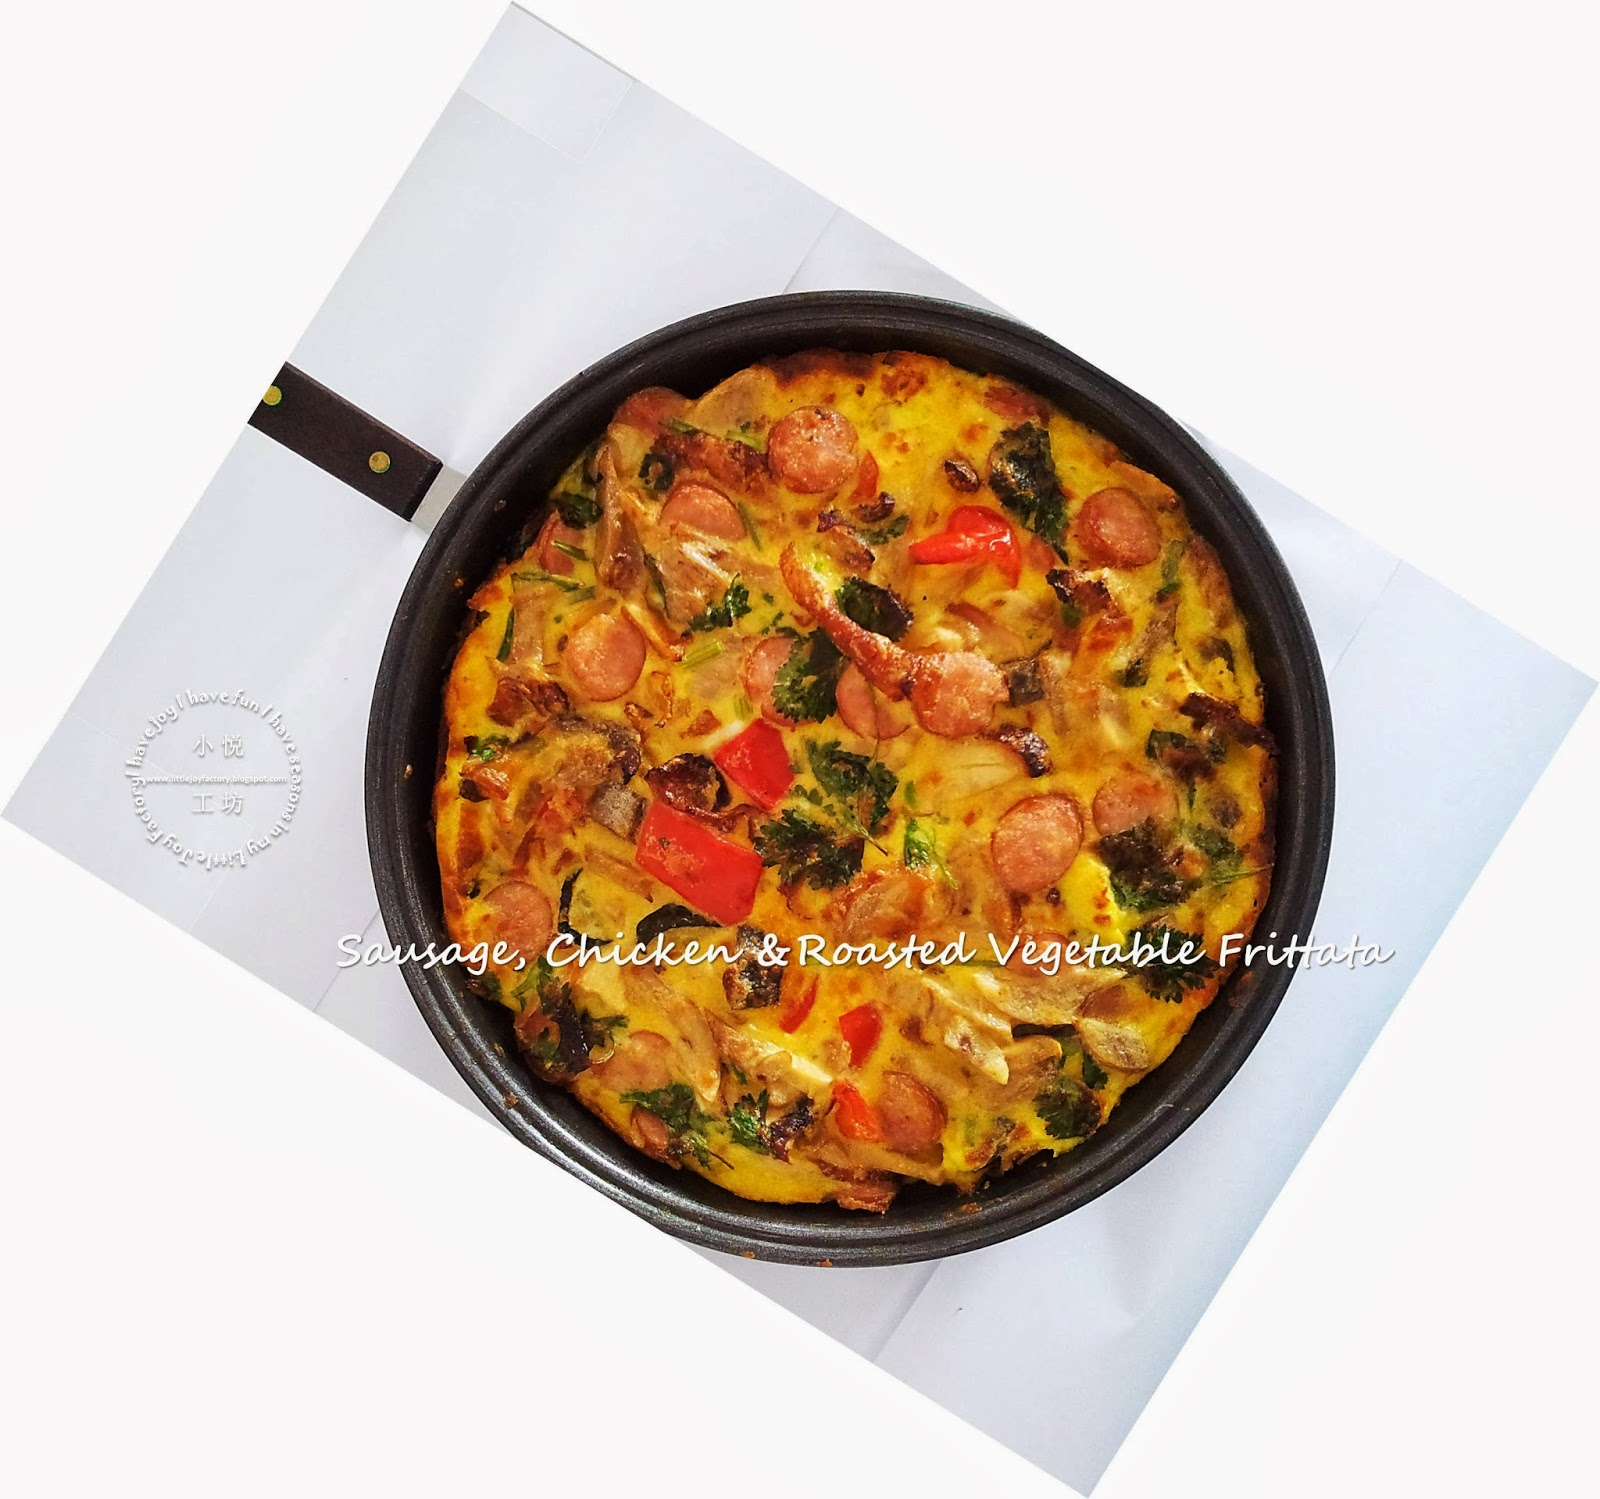 Frittata with Roasted Vegetables, Sausage and Chicken